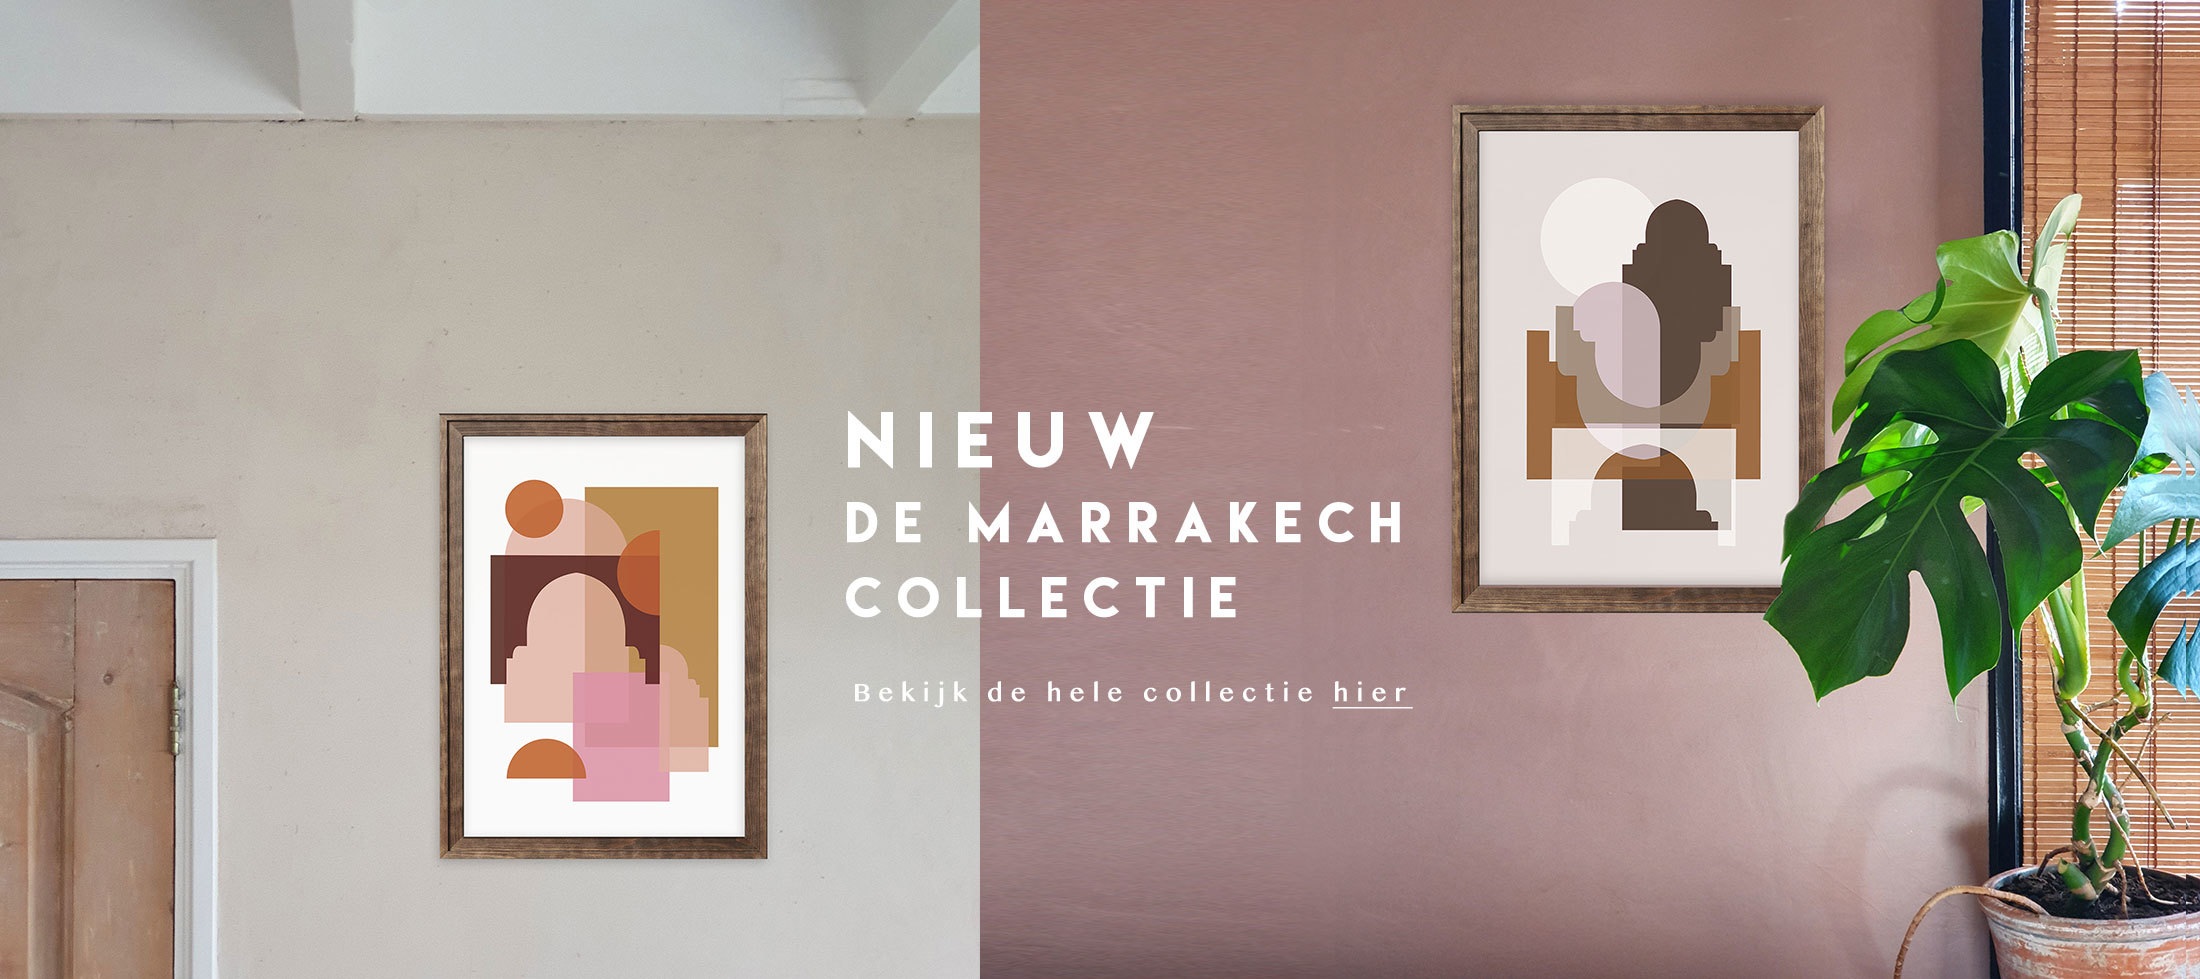 Marrakech collection interieur posters